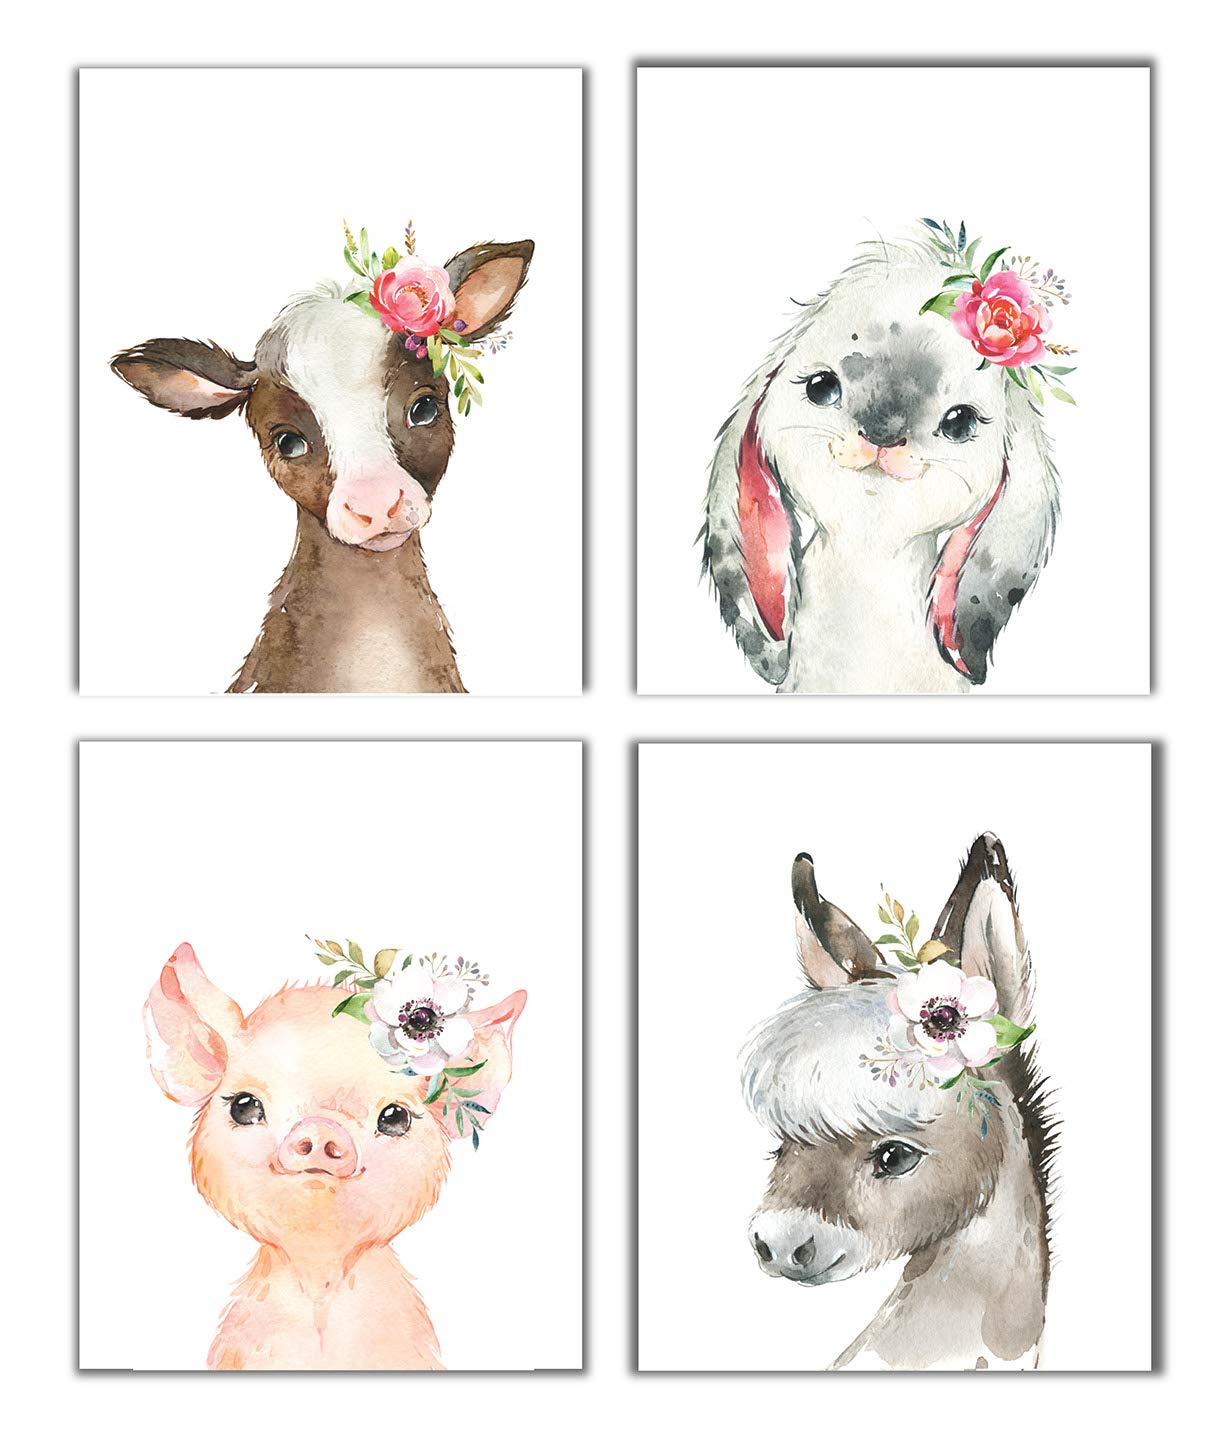 Little Baby Watercolor Farm Animals Floral Crown Prints Set of 4 (Unframed) Nursery Decor Art (8x10) (Option 1)